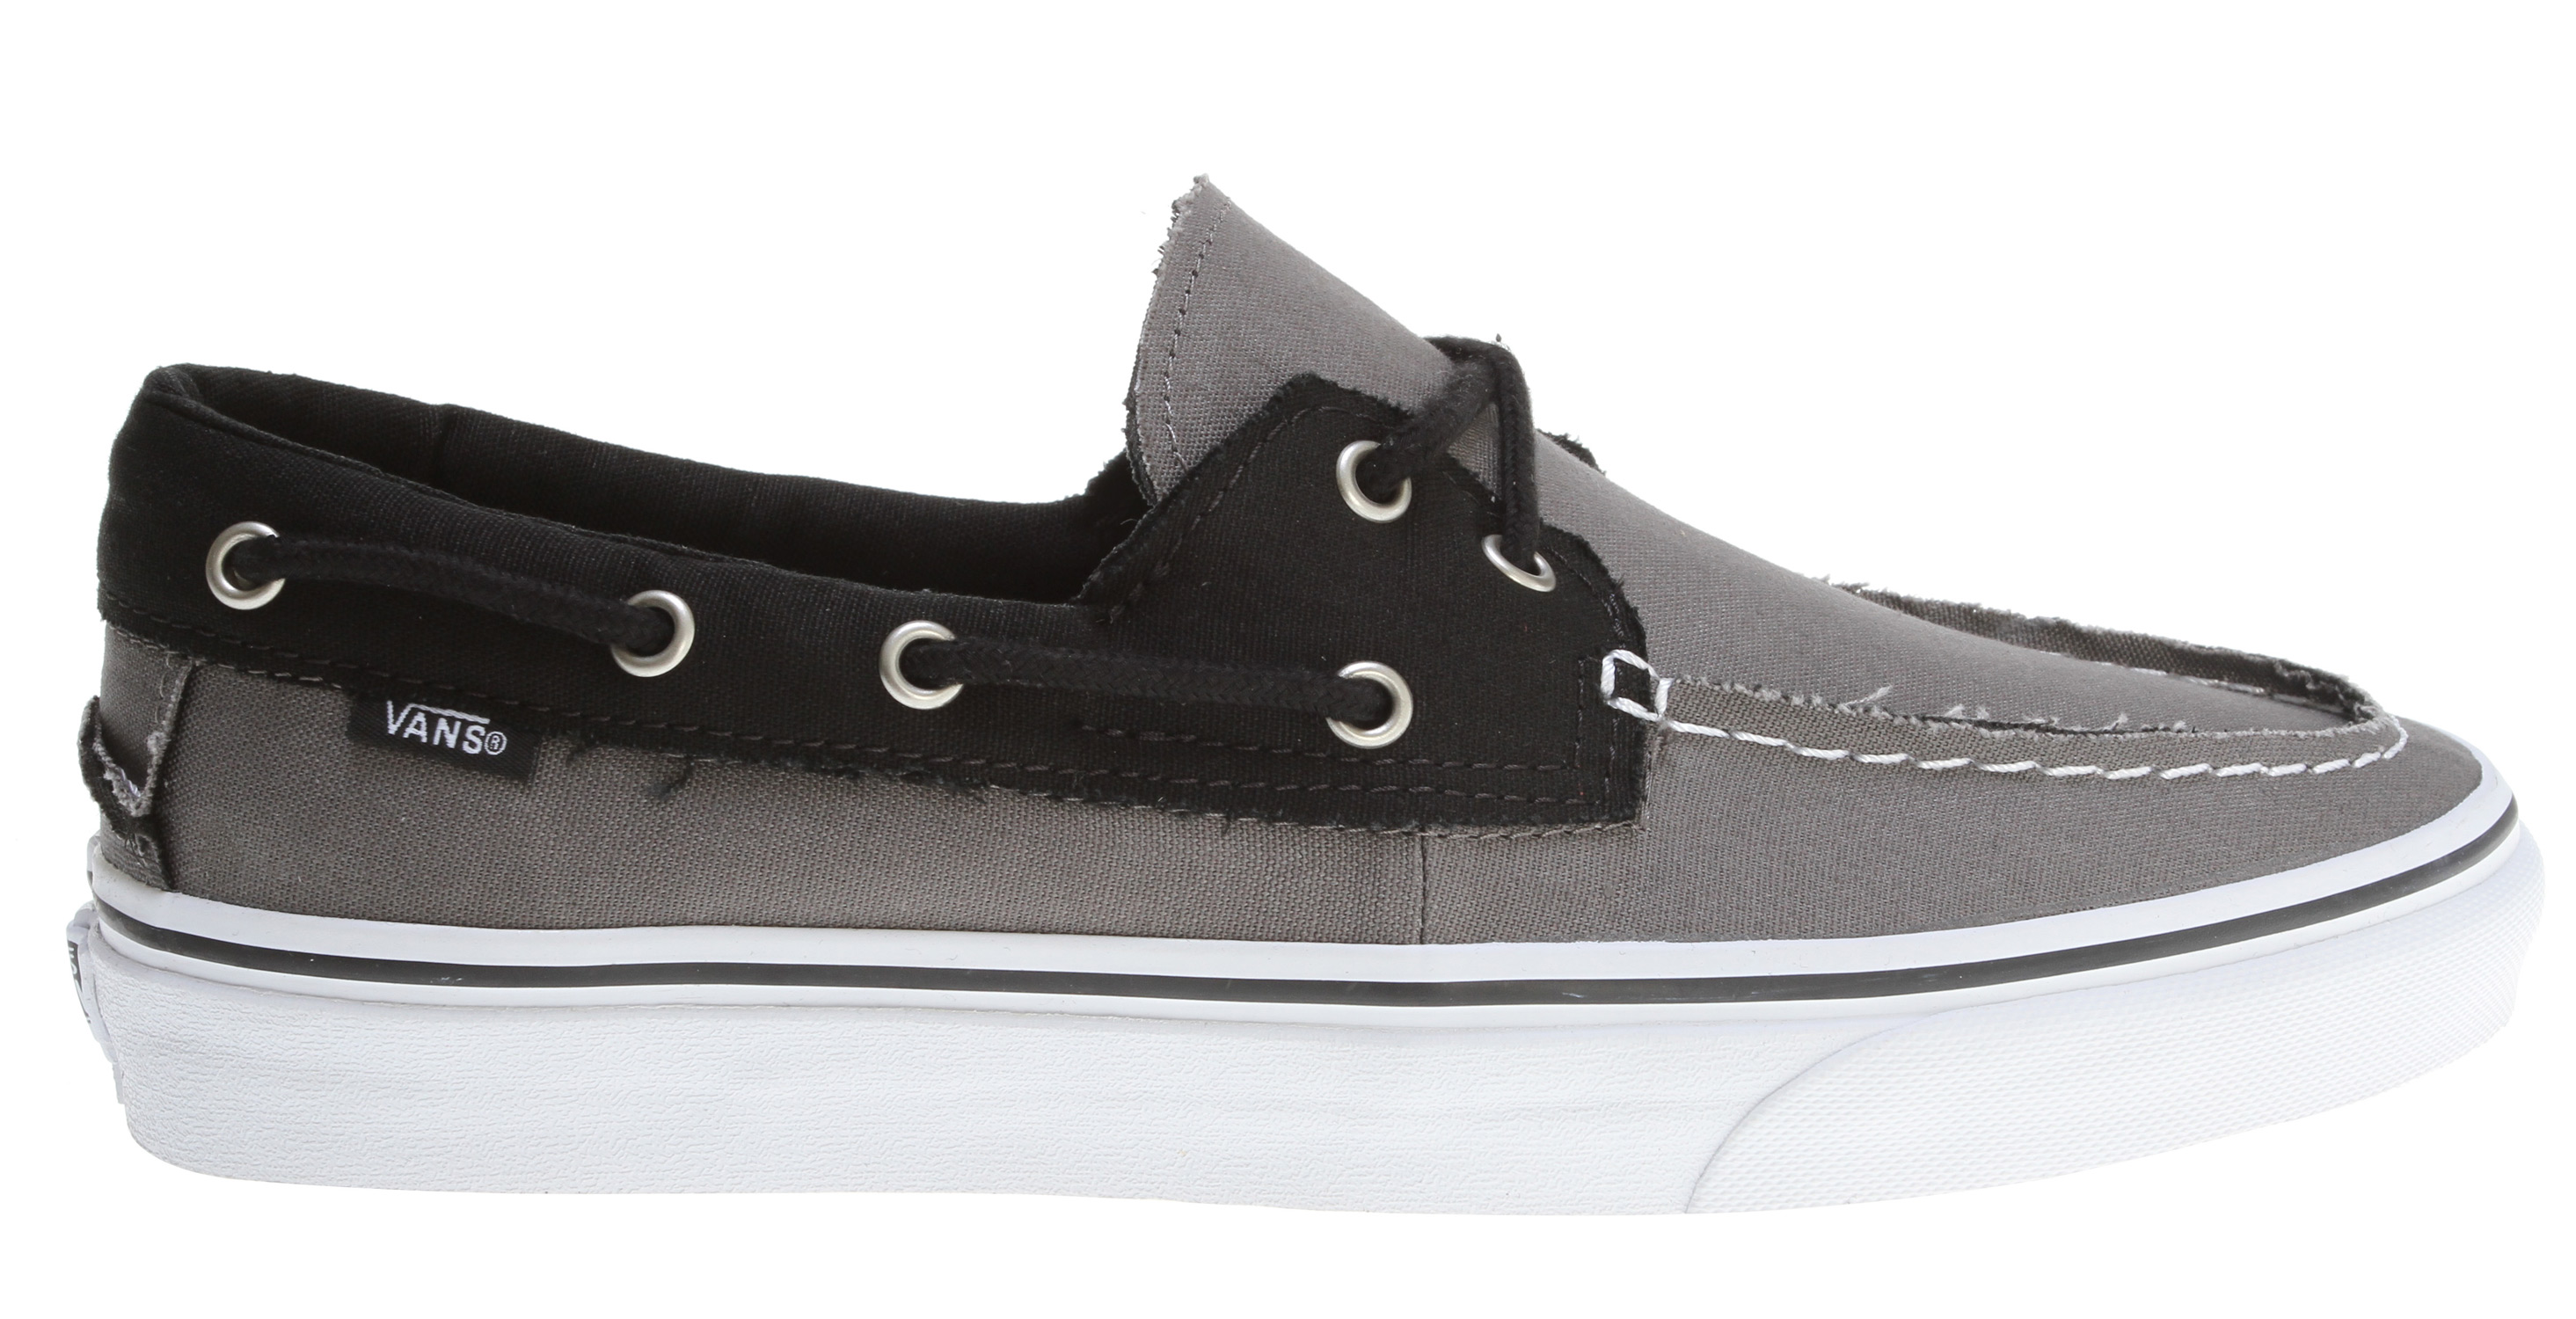 Skateboard Key Features of the Vans Zapato Del Barco Shoes: Canvas uppers. Boat shoe influence. Metal eyelets. Vulcanized outsoles. Unisex sizing. Imported. - $41.95